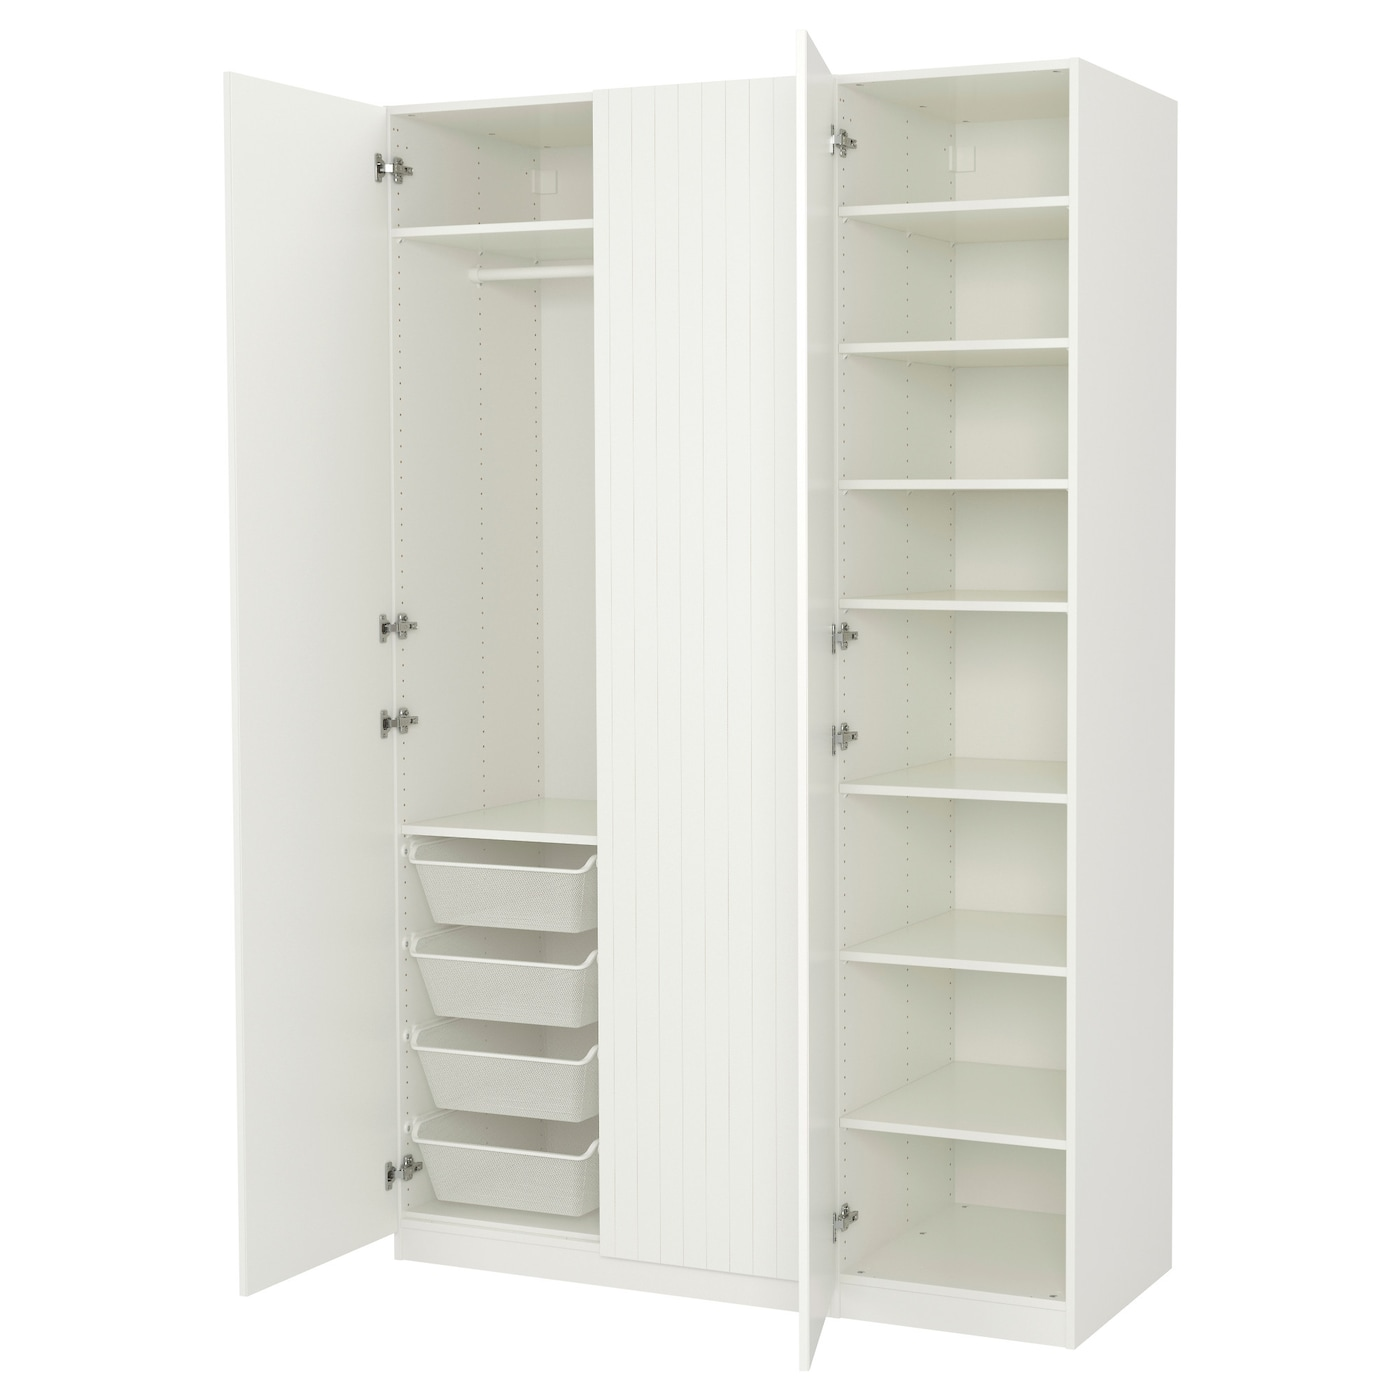 Pax wardrobe white marnardal striped white beige for Armoire penderie pour entree